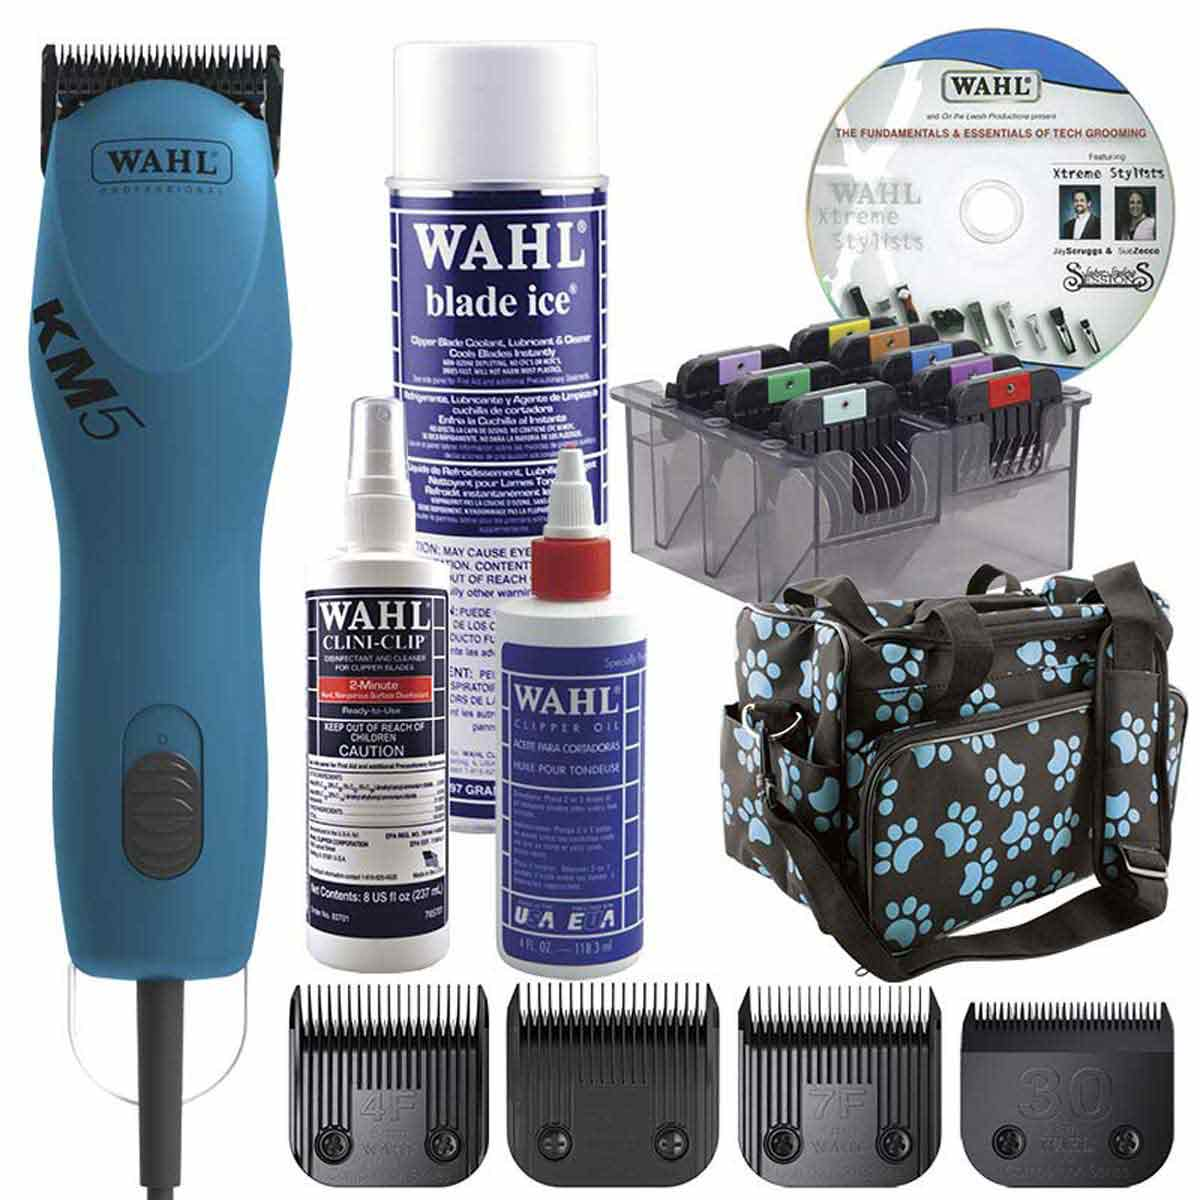 Turquoise Wahl KM5 Grooming Student Kit - Includes Everything Beginners Need